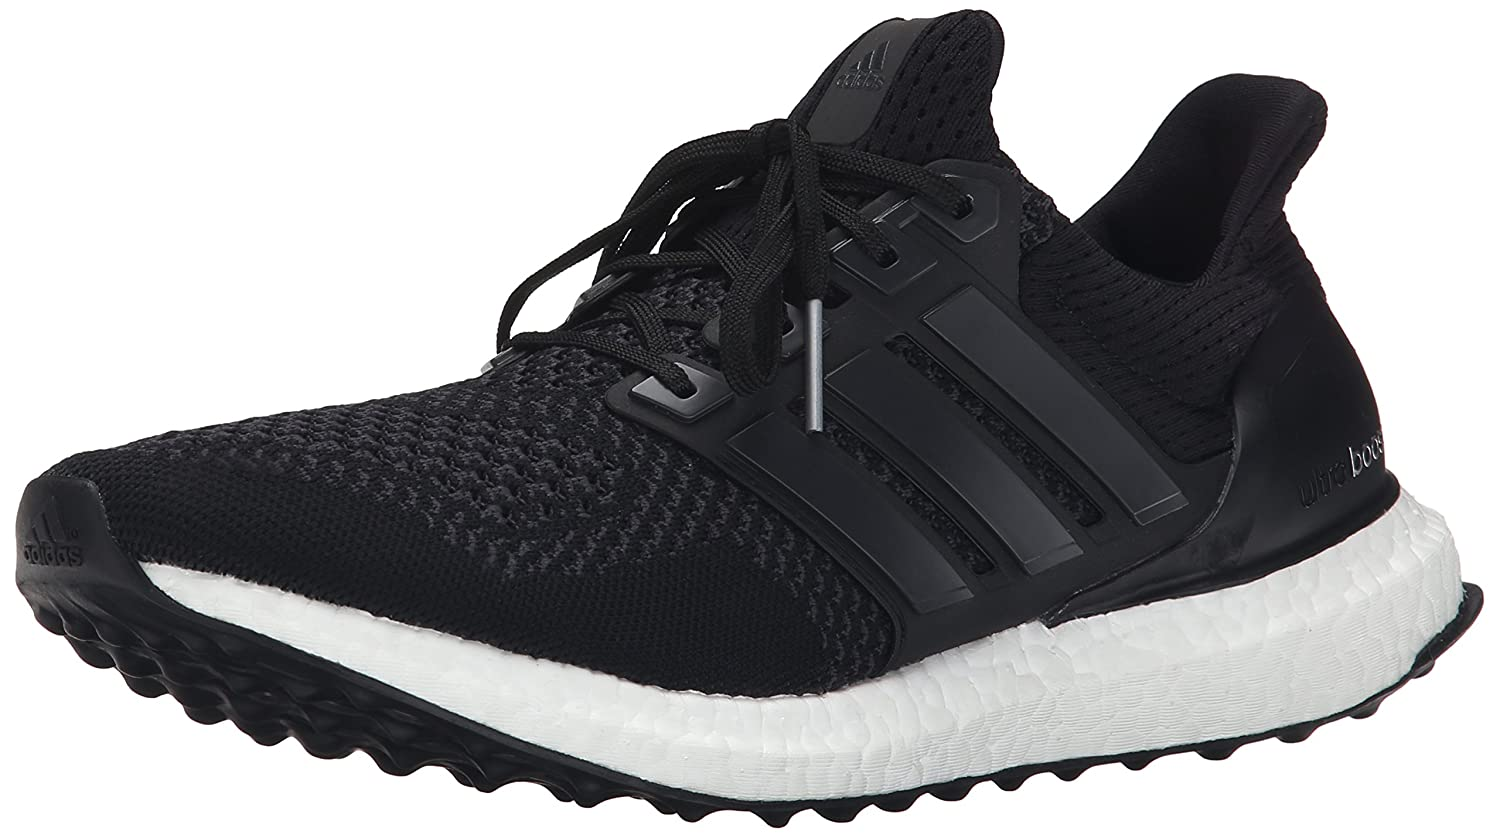 adidas Performance Men's Ultra Boost M Running Shoe B00WW7LNKK 10 M US|Black/Black/Solar Yellow